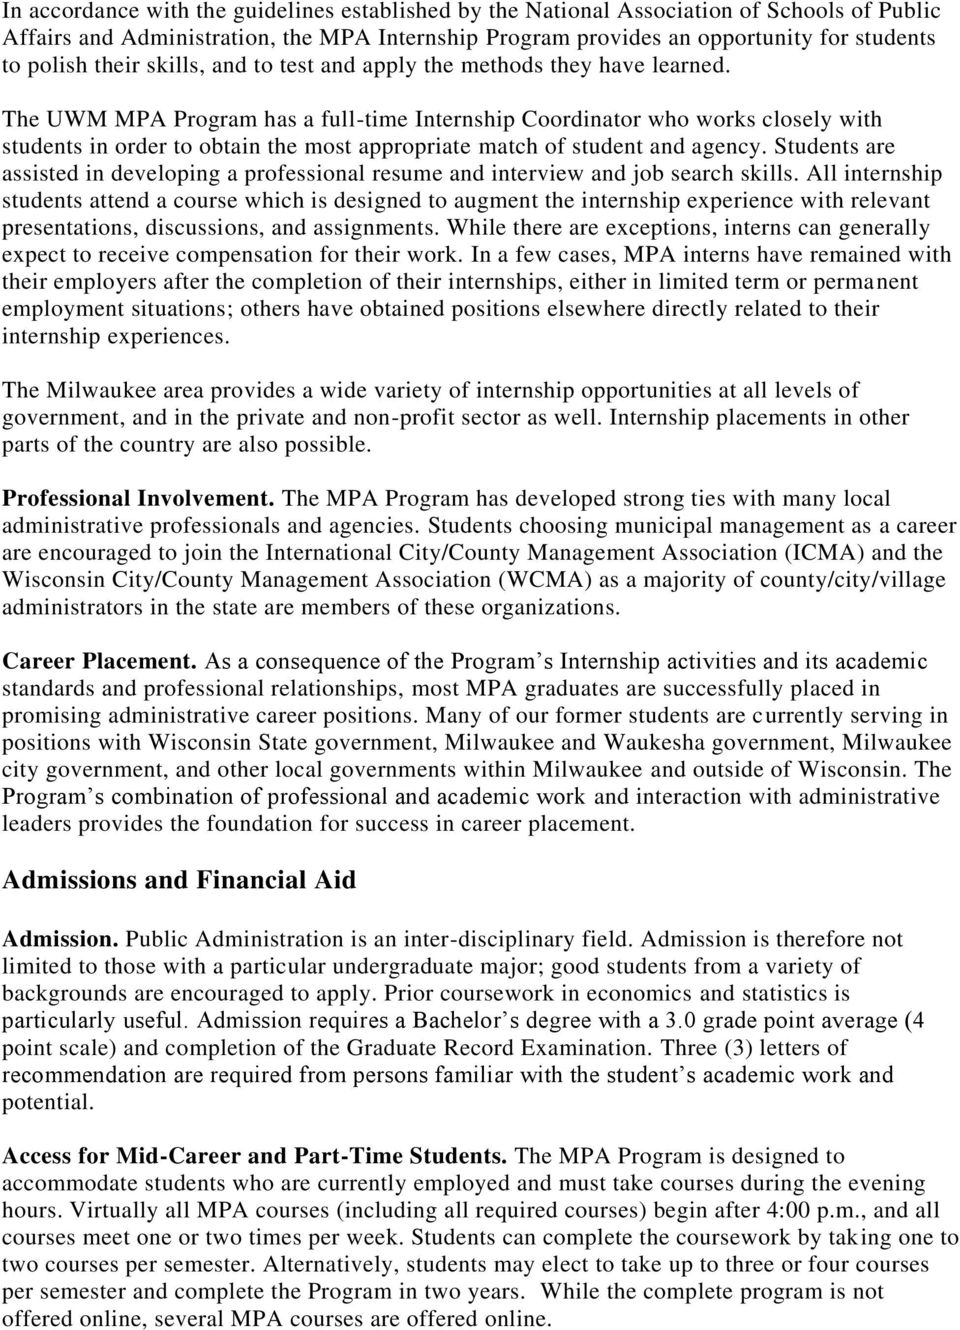 The UWM MPA Program has a full-time Internship Coordinator who works closely with students in order to obtain the most appropriate match of student and agency.